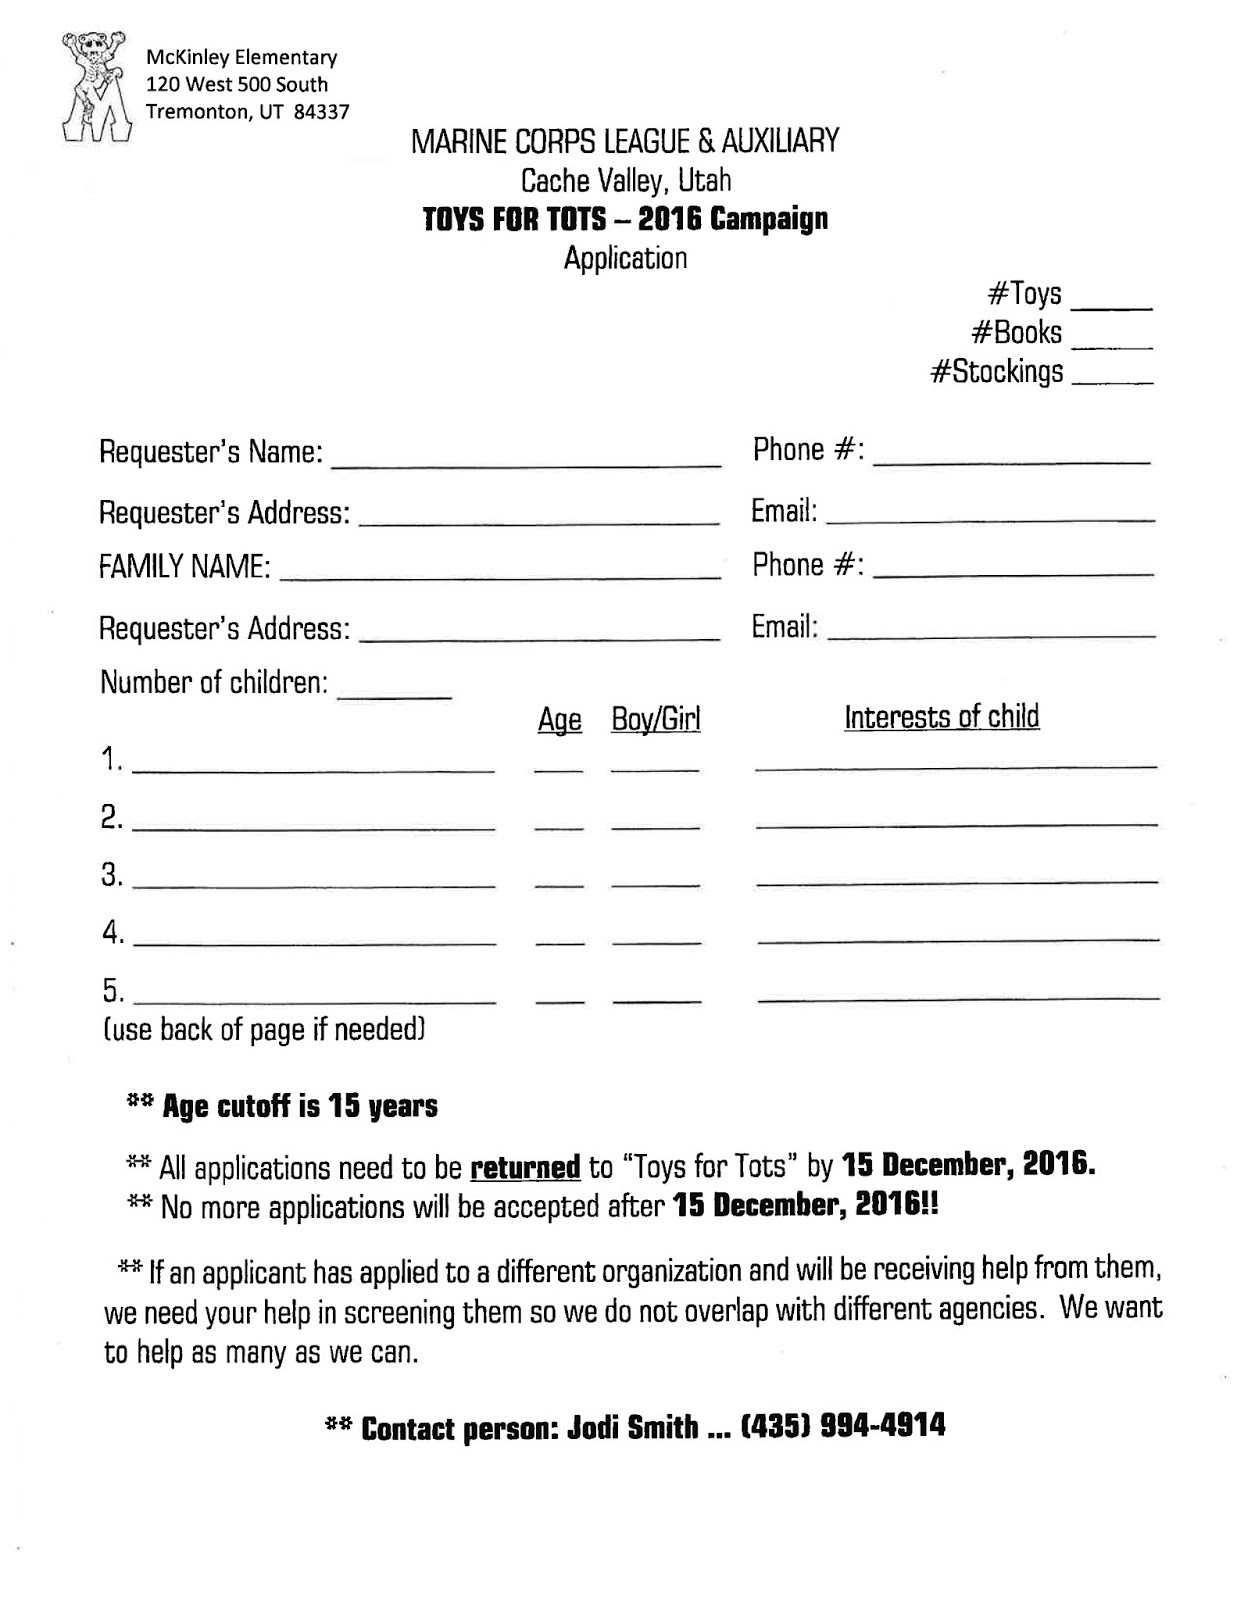 Organization For Toys For Tots Application Form : Mckinley elementary cougars toys tots